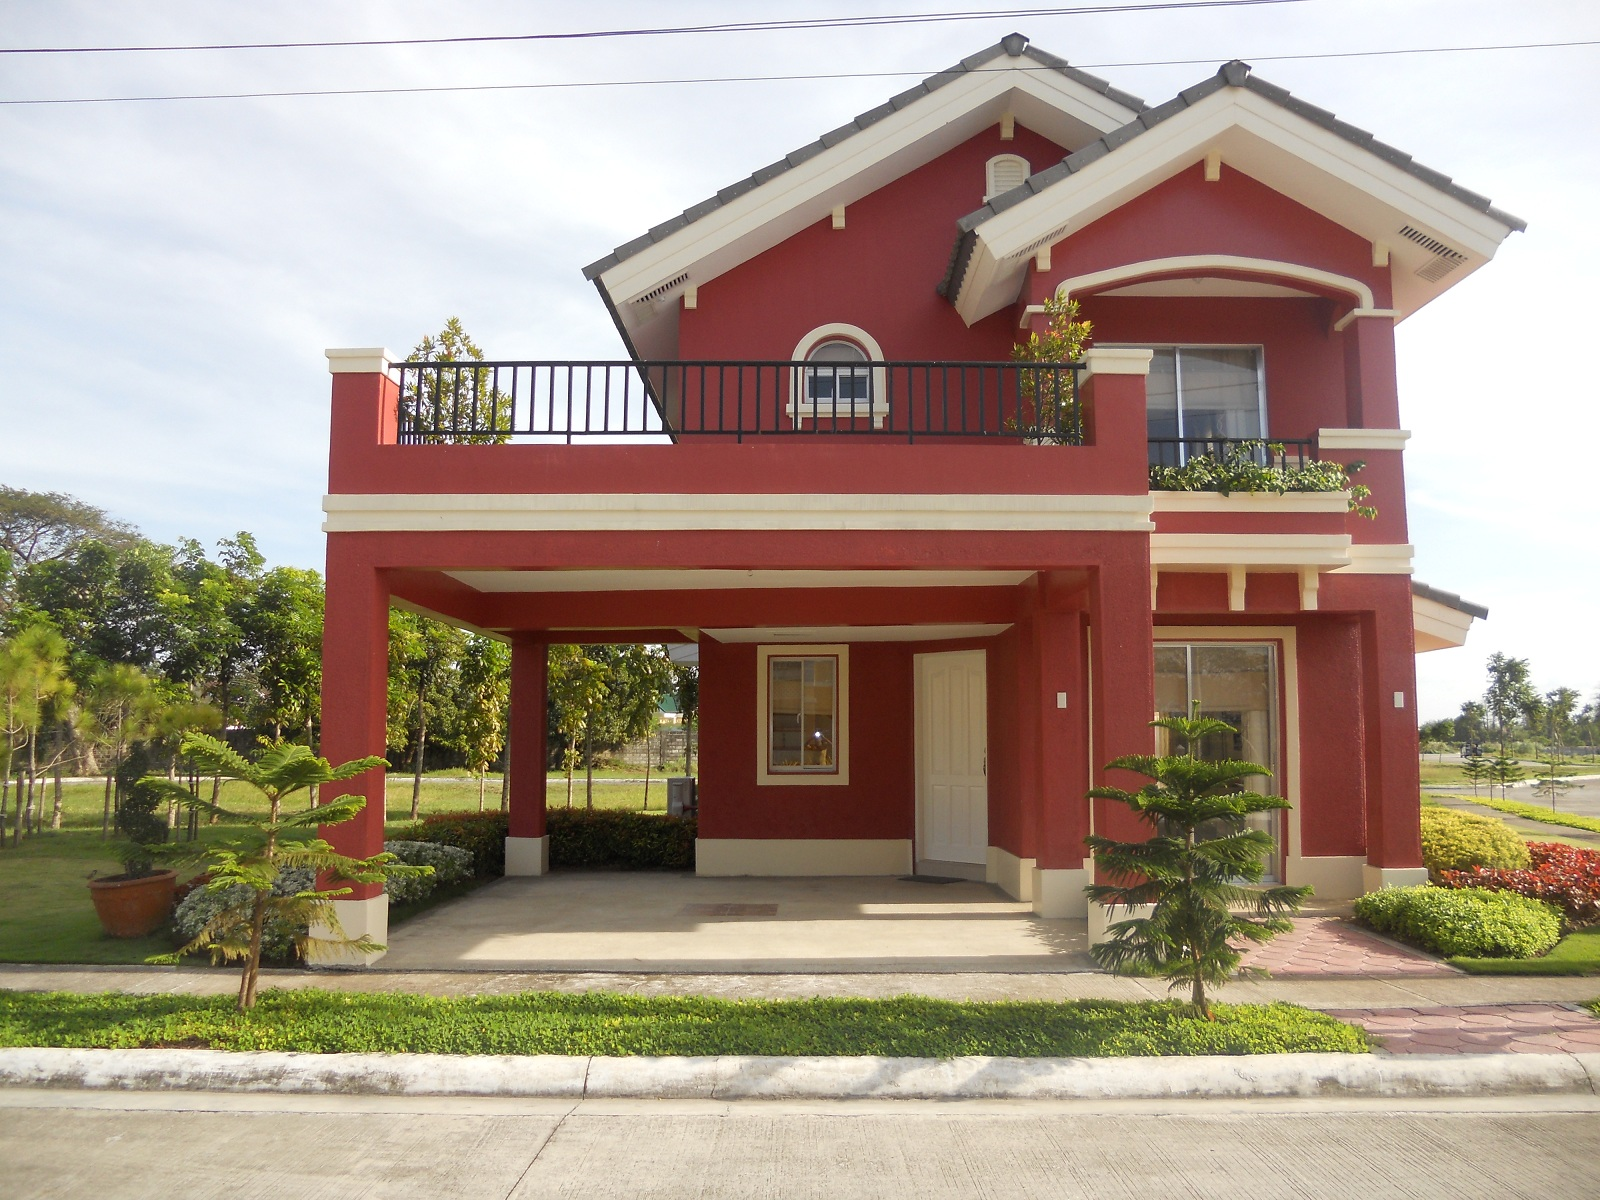 Althea or ruby model house of savannah glades iloilo by for House models in the philippines